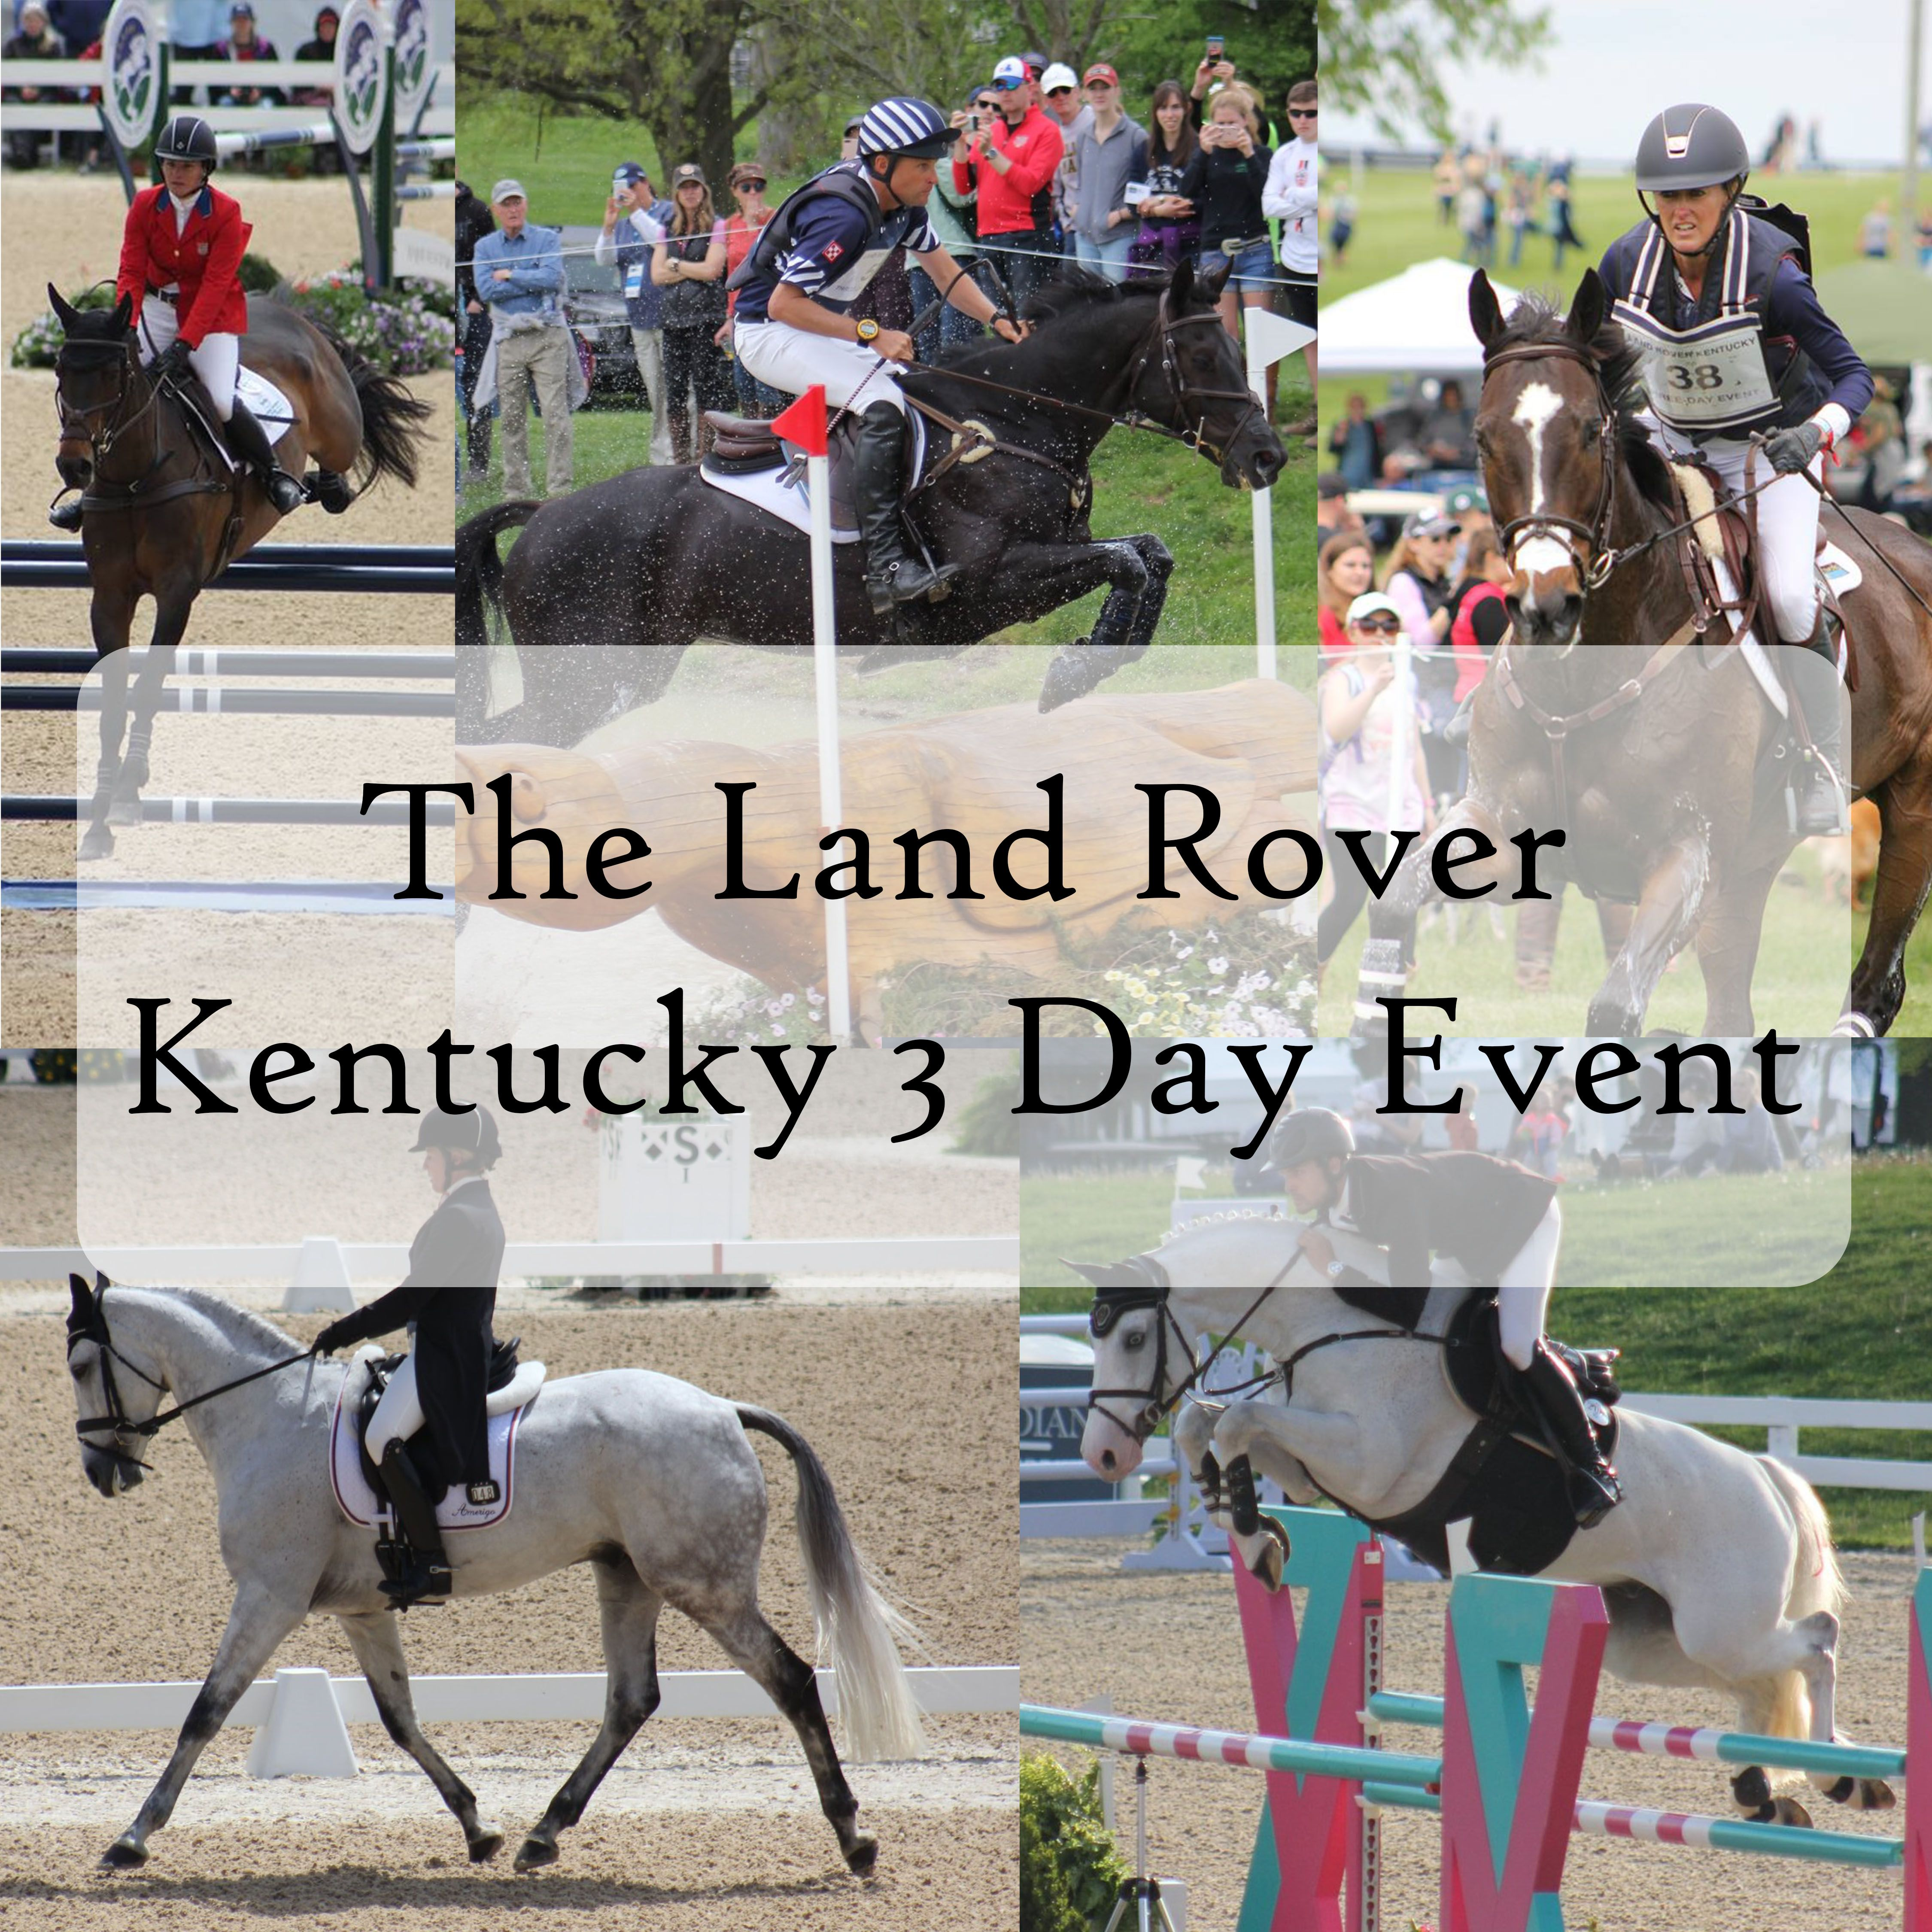 The Land Rover Kentucky 3 Day Event Eventing Horses Land Rover Kentucky